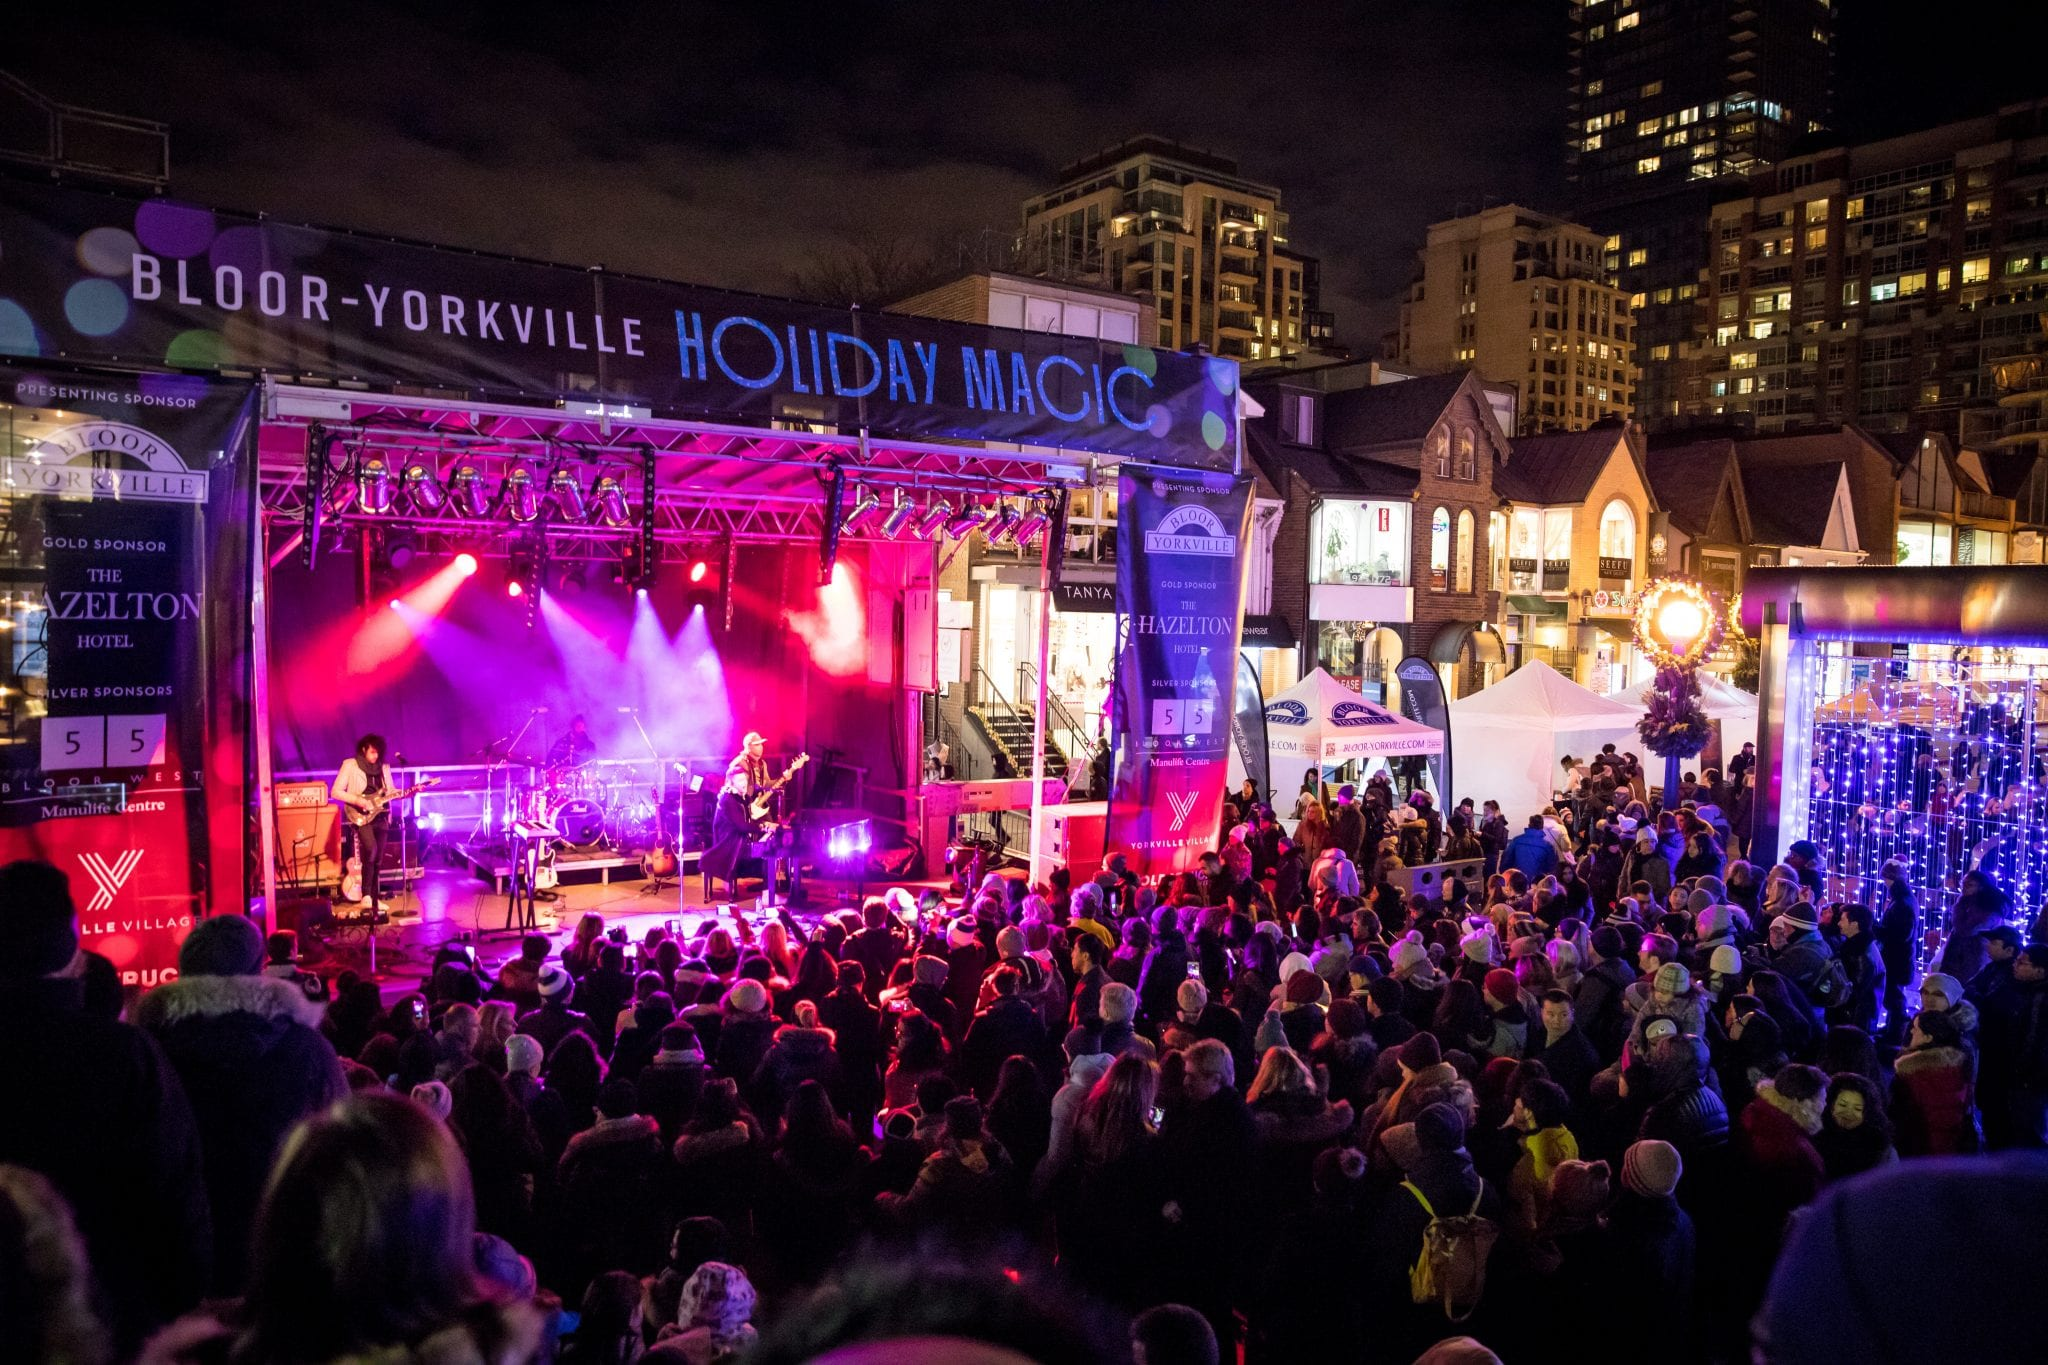 Guests at Holiday Magic 2018 Bloor-Yorkville watch Shawn Hook concert